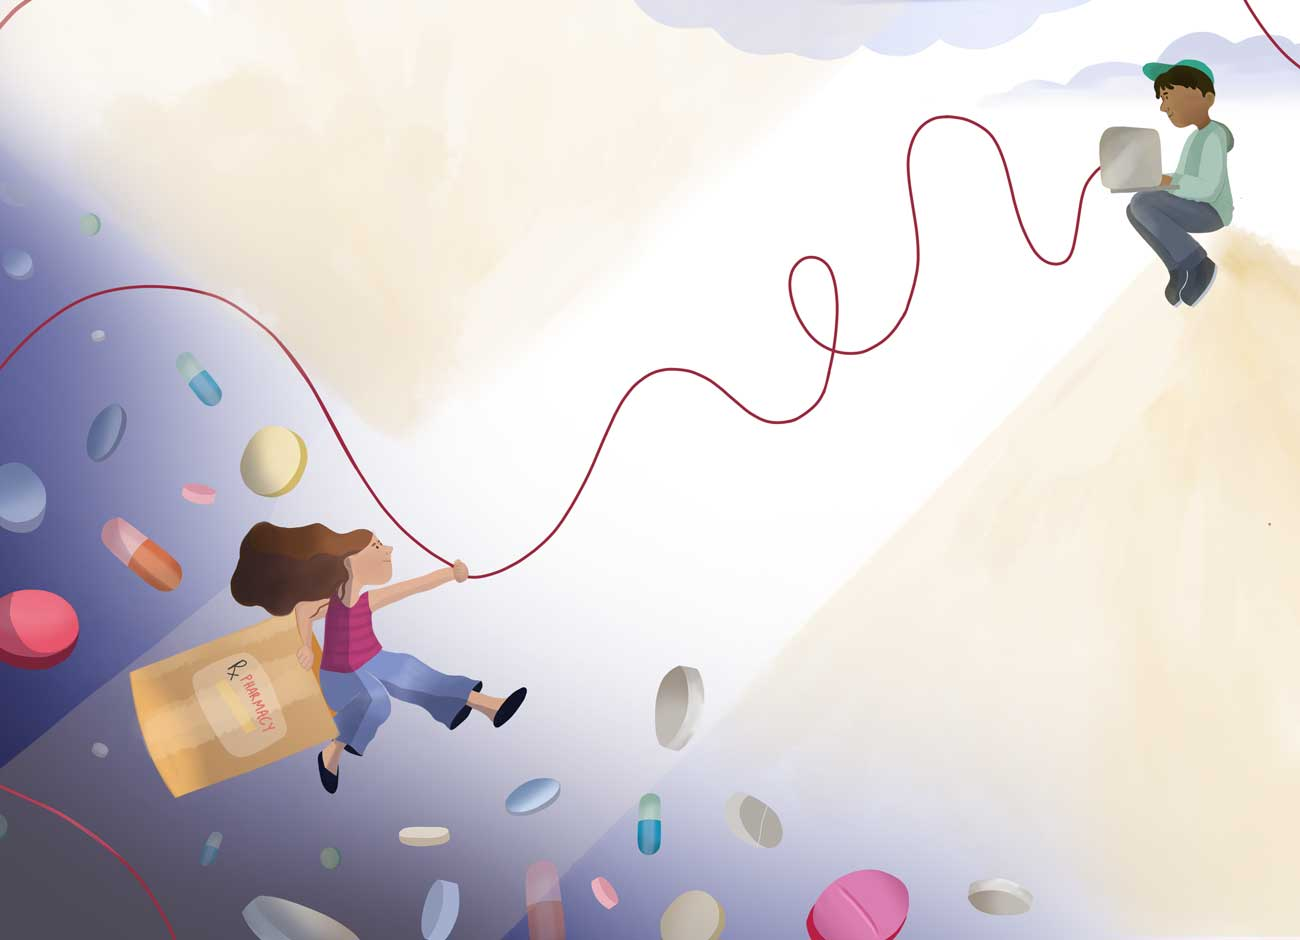 an illustration of a woman holding onto a rope and climbing up and away from pills that are chasing her